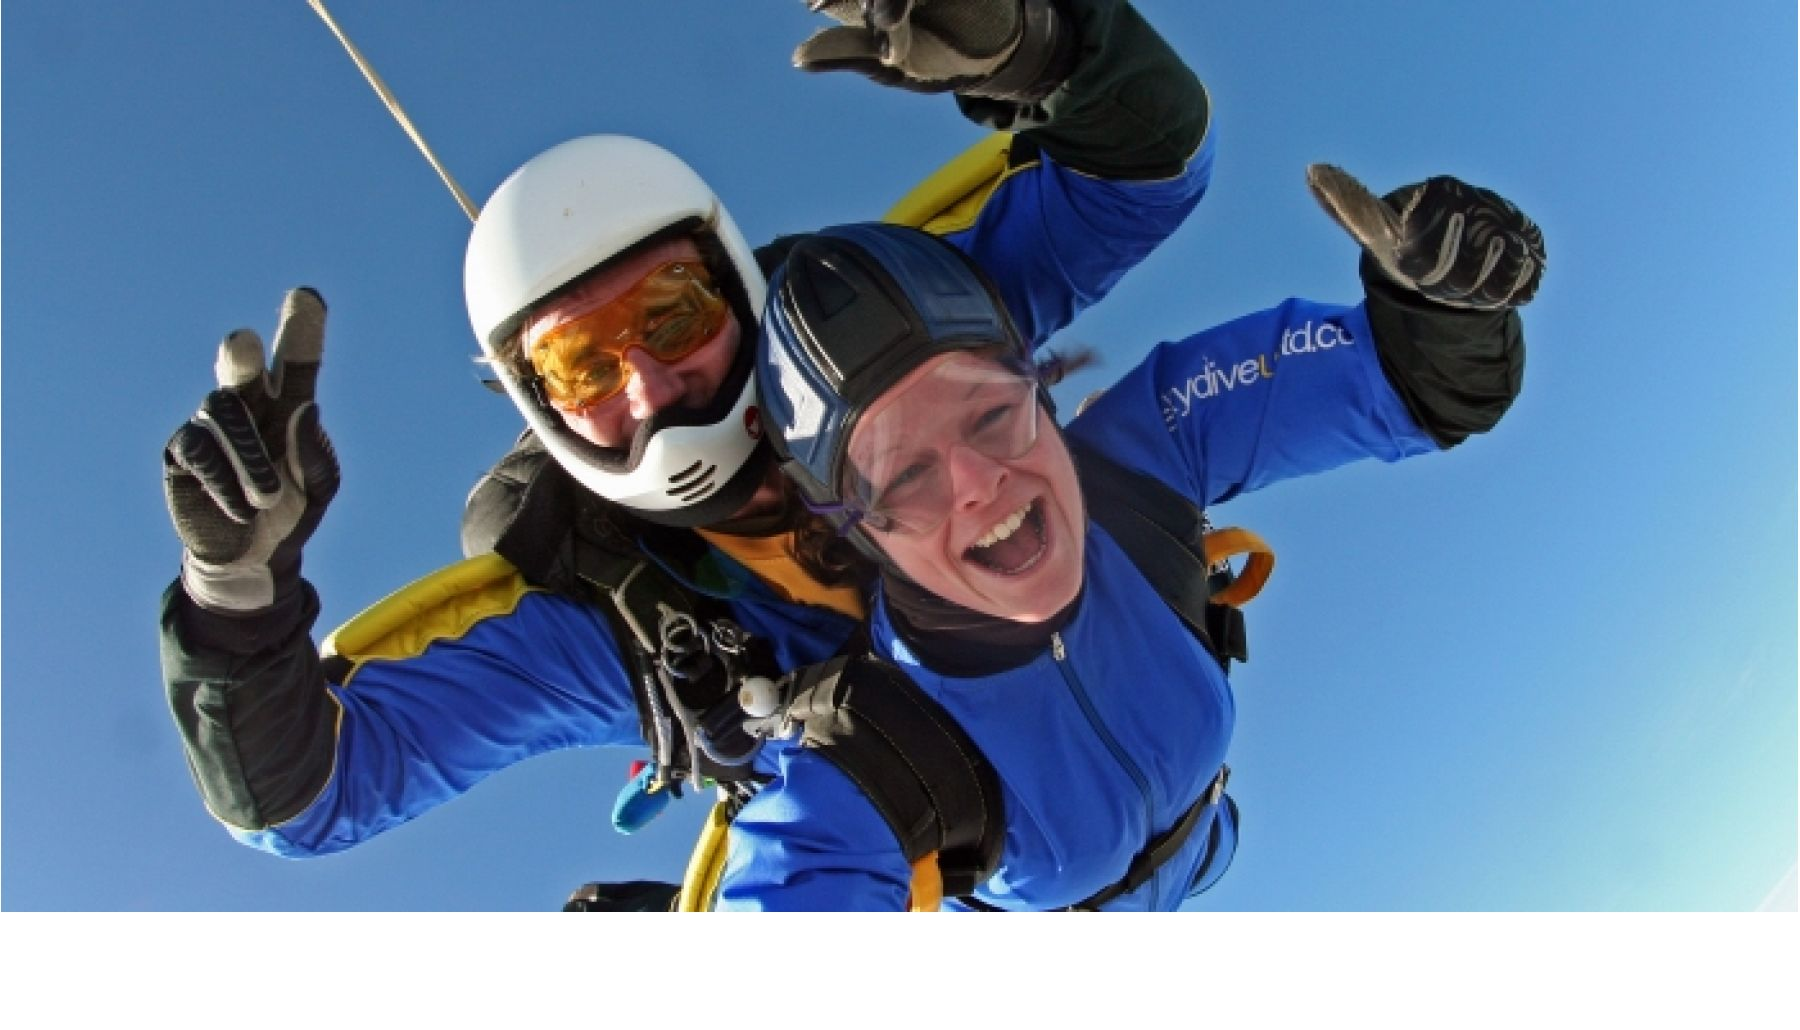 Two people in blue jumpsuits in the sky doing a skydive